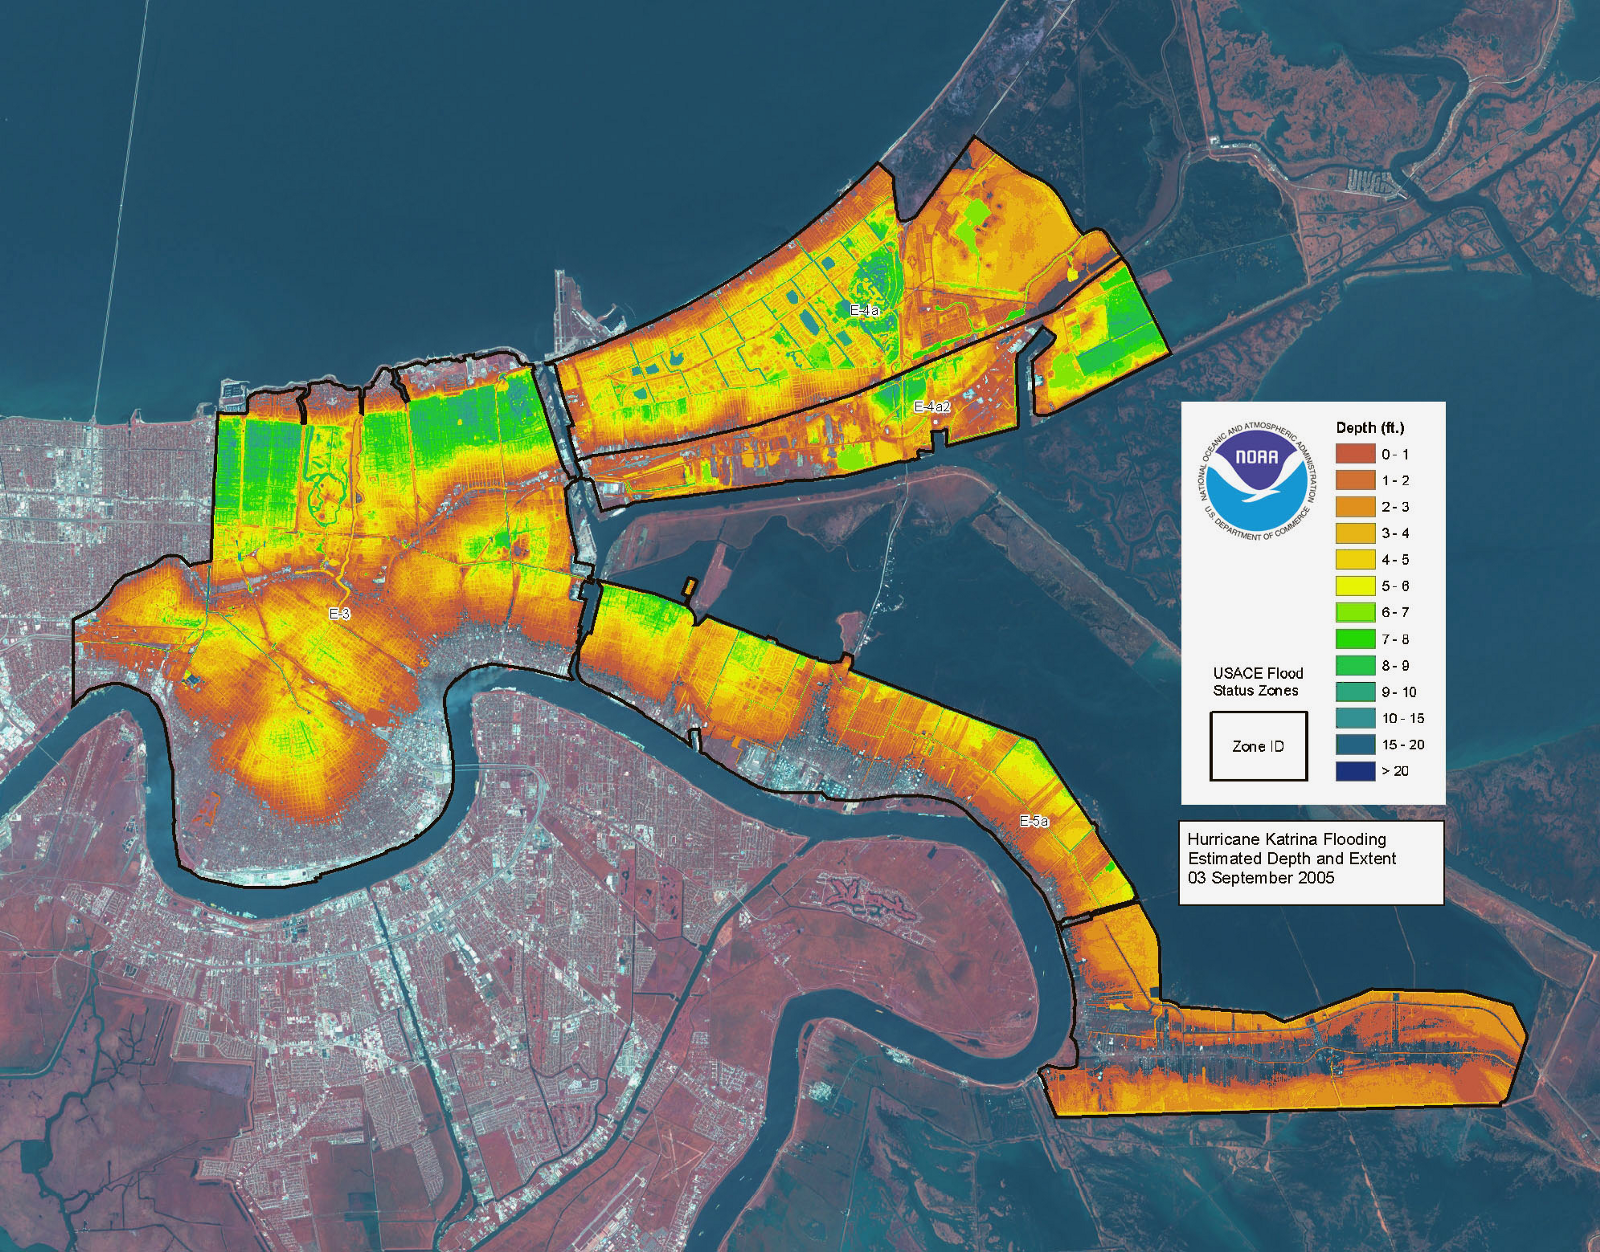 College hosts lecture on flood mapping by Syracuse professor Sarah on